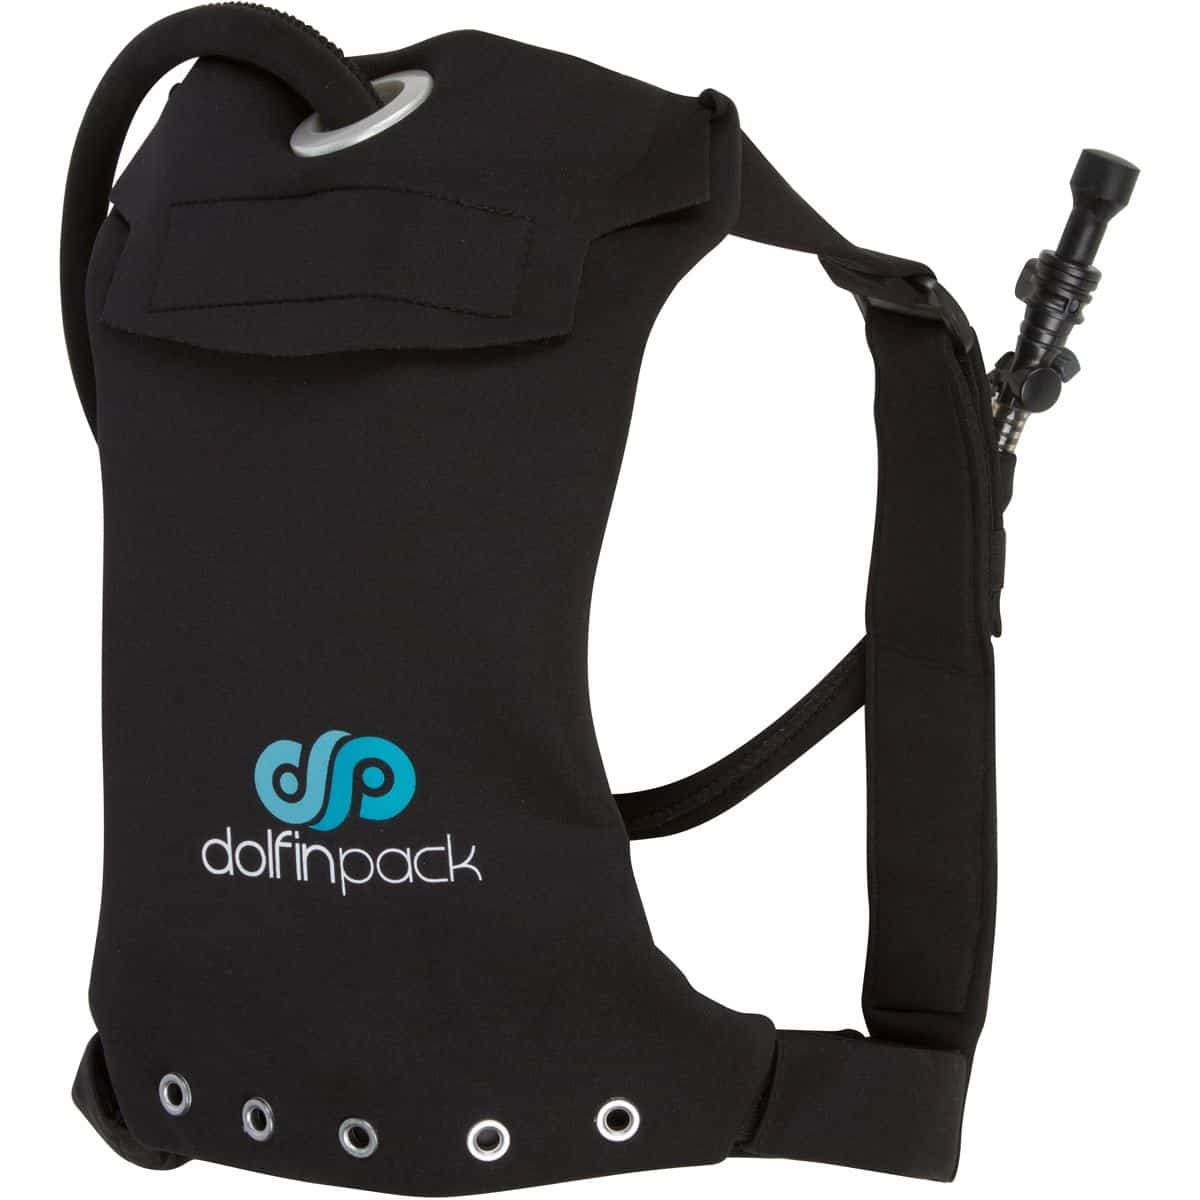 DolfinPack 2 Lightweight Hydration Pack review